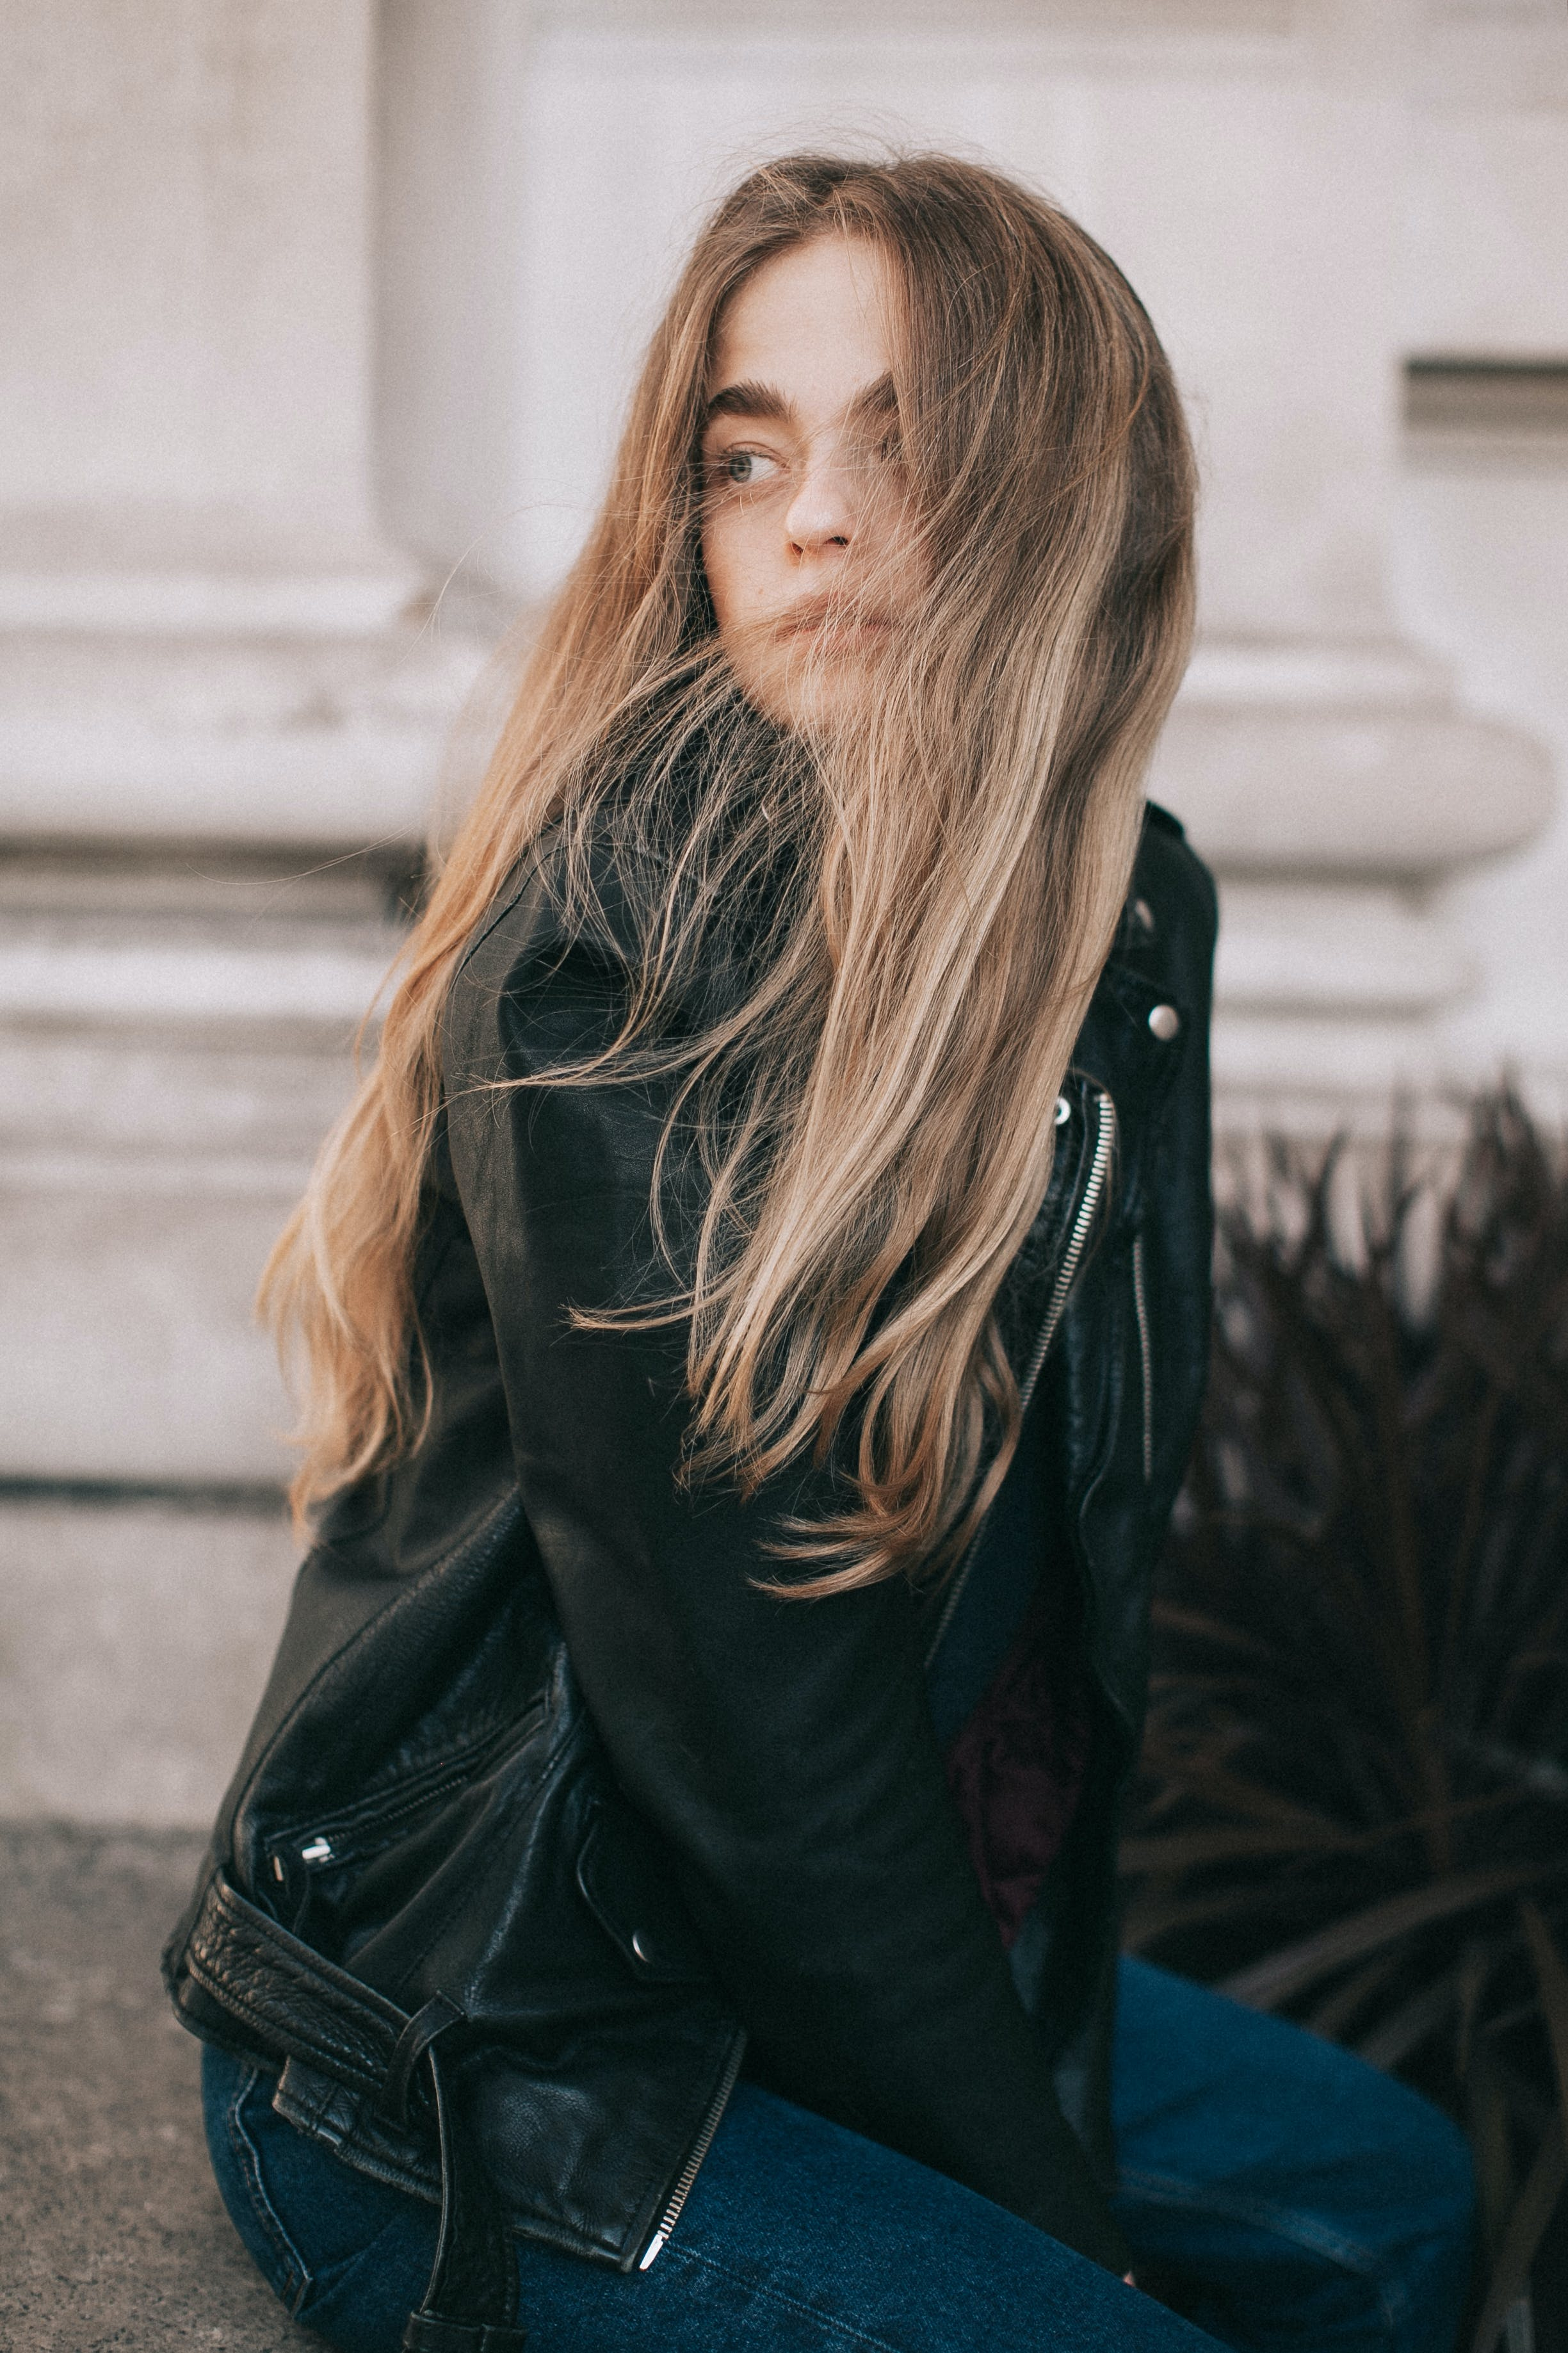 Photo of Woman Wearing Black Leather Jacket